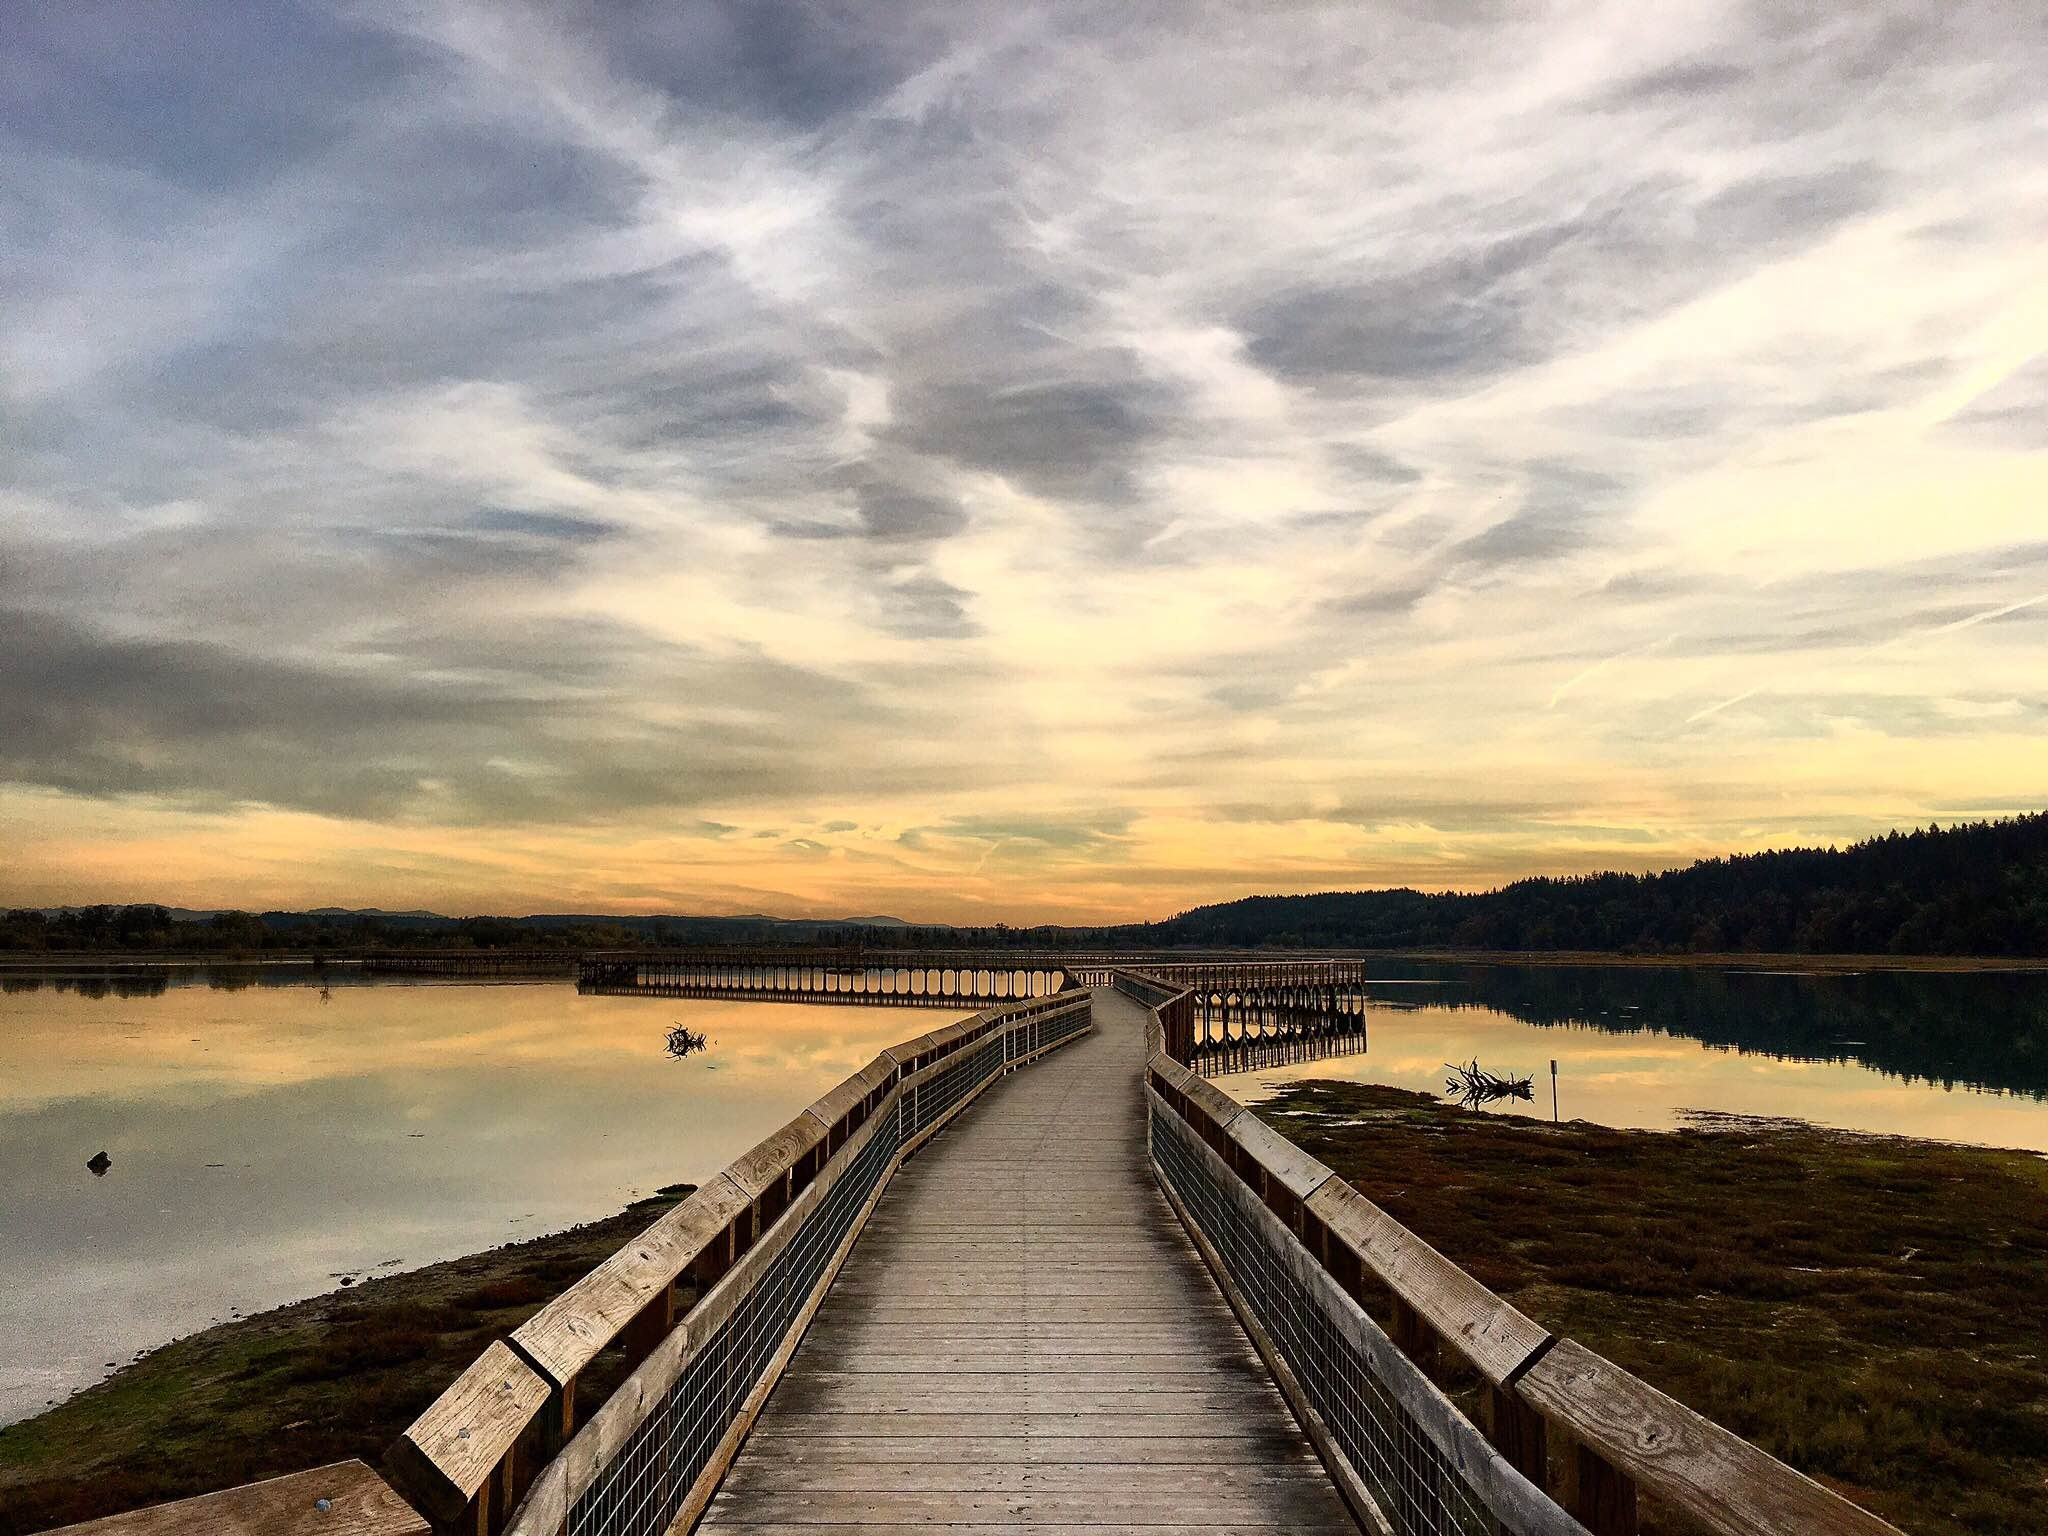 Nisqually by klyph76.jpeg